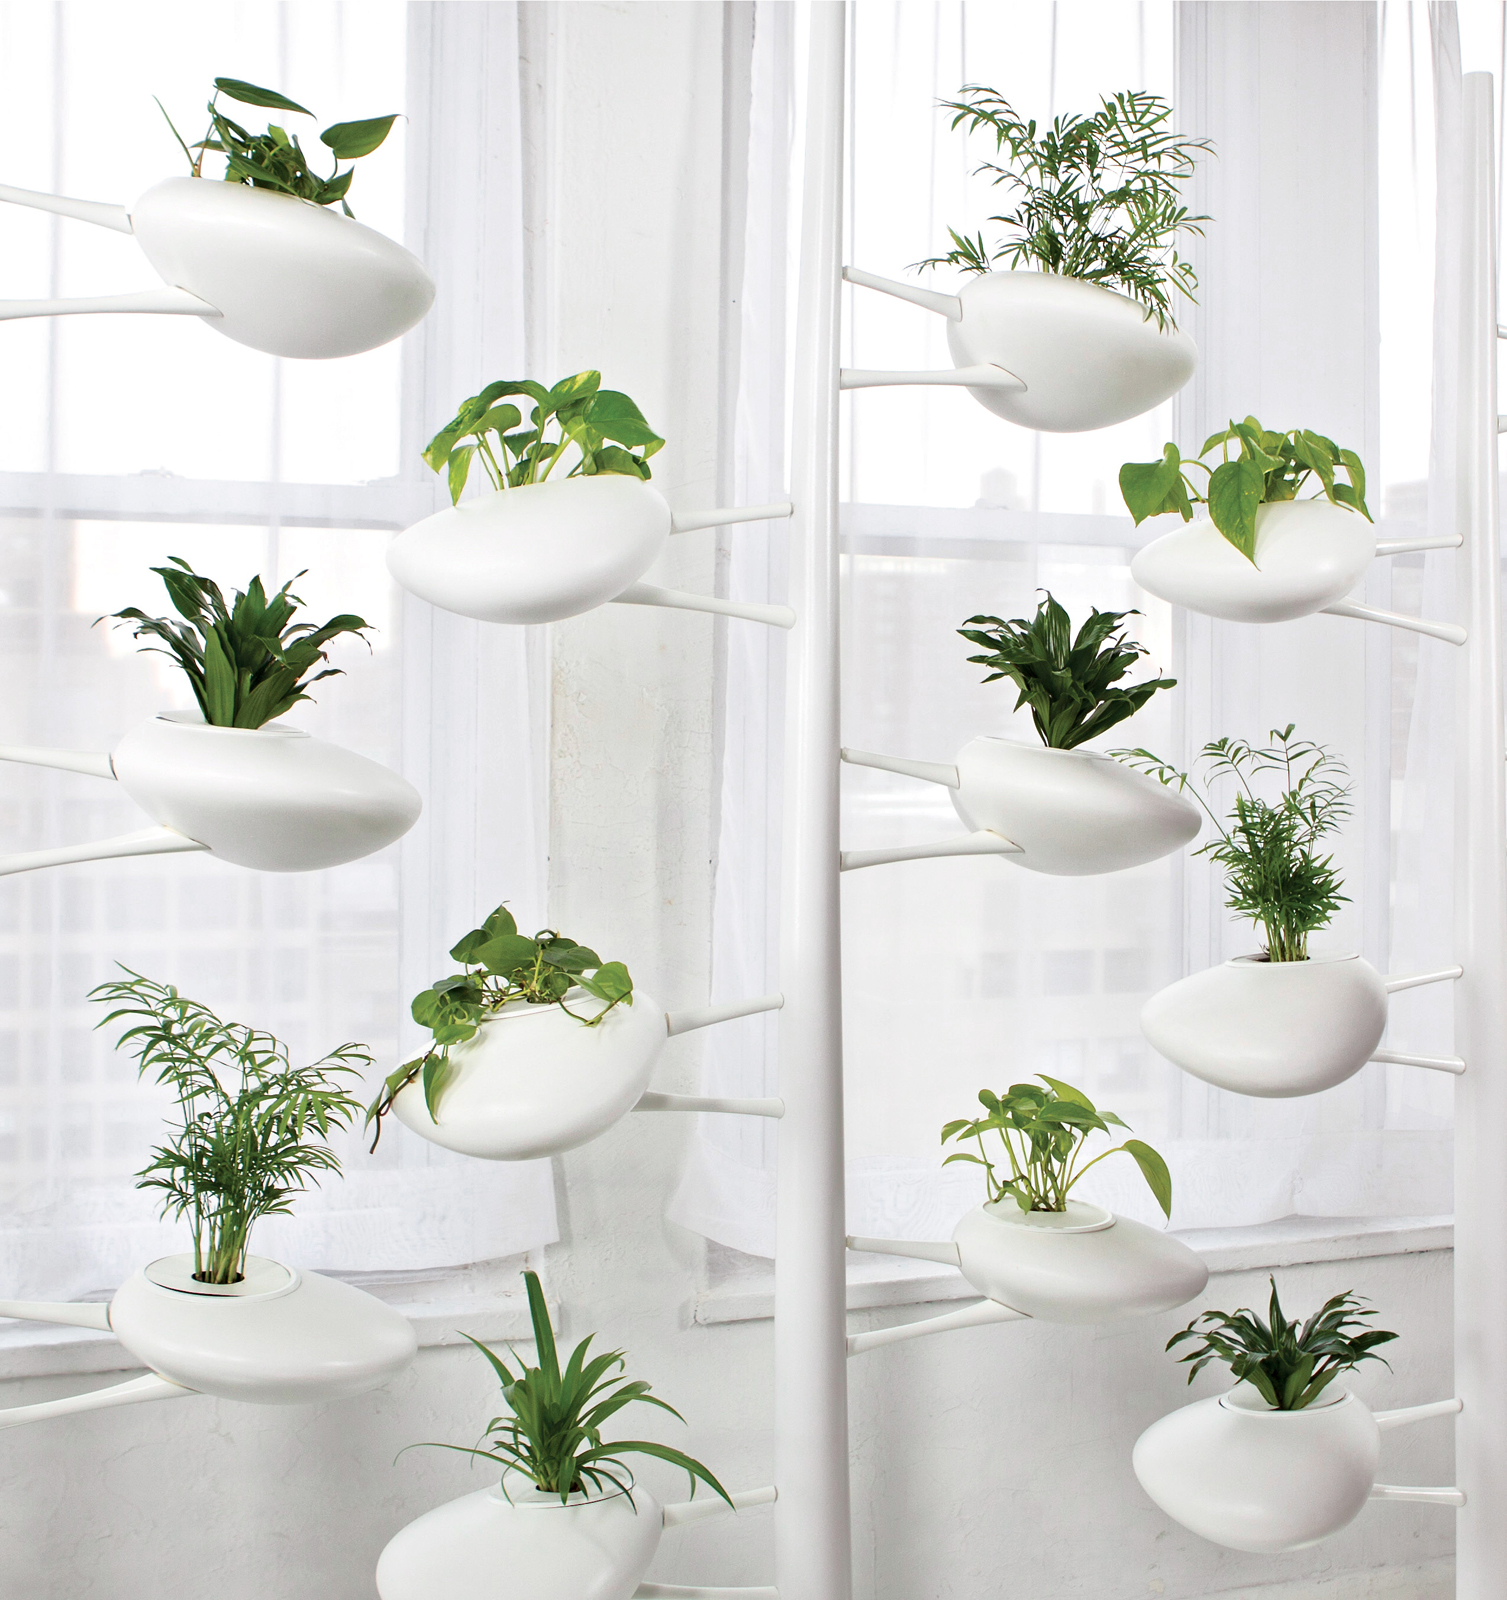 White self-sustaining indoor planter.